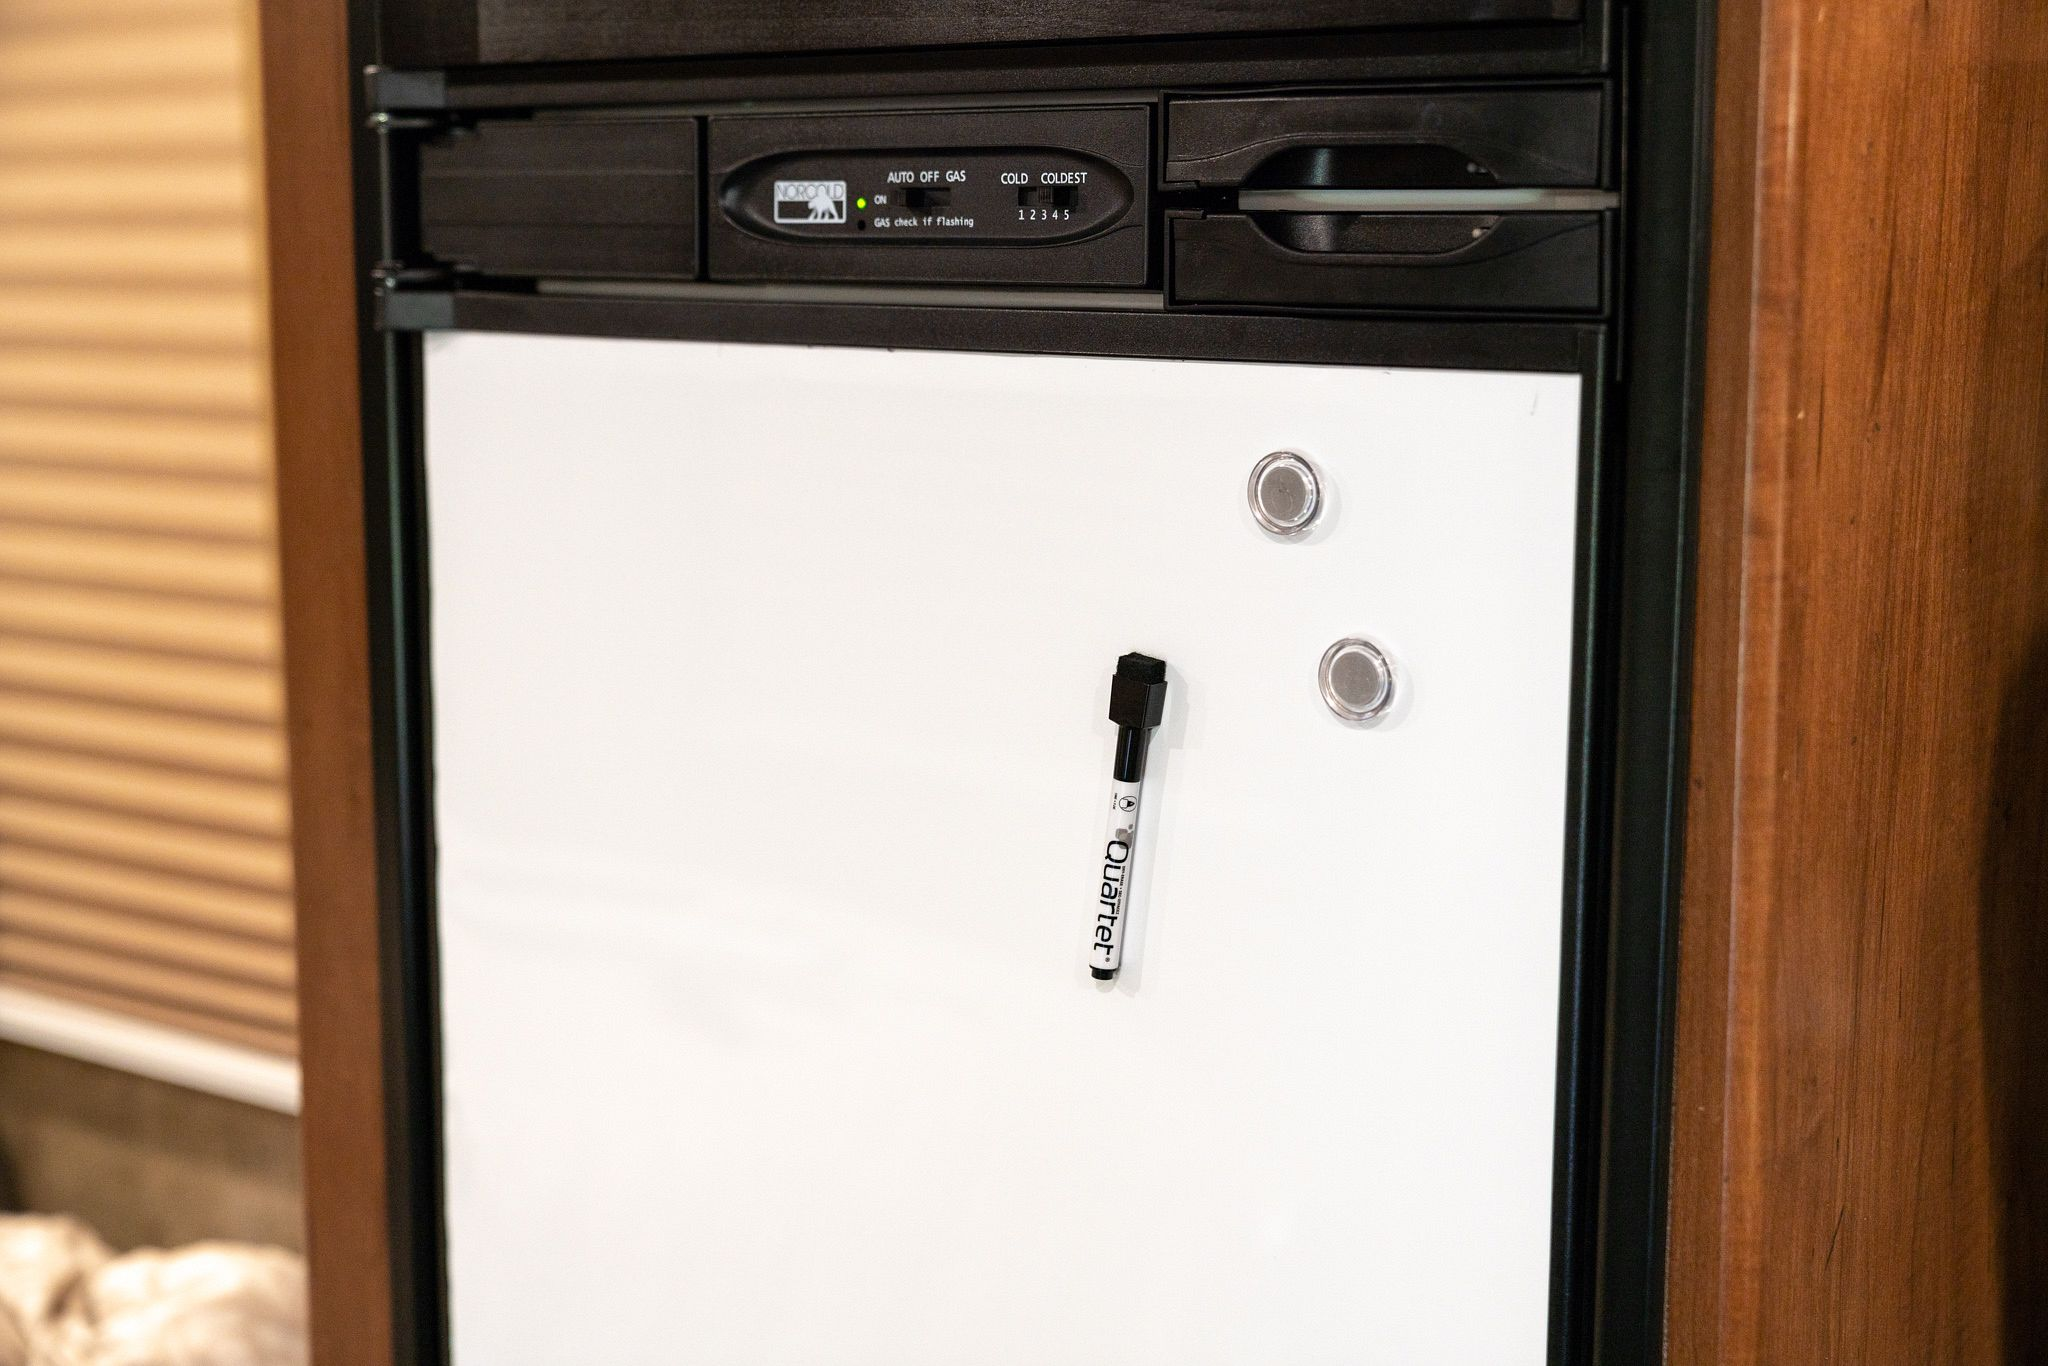 Magnetic dry-erase board to replace the RV fridge door